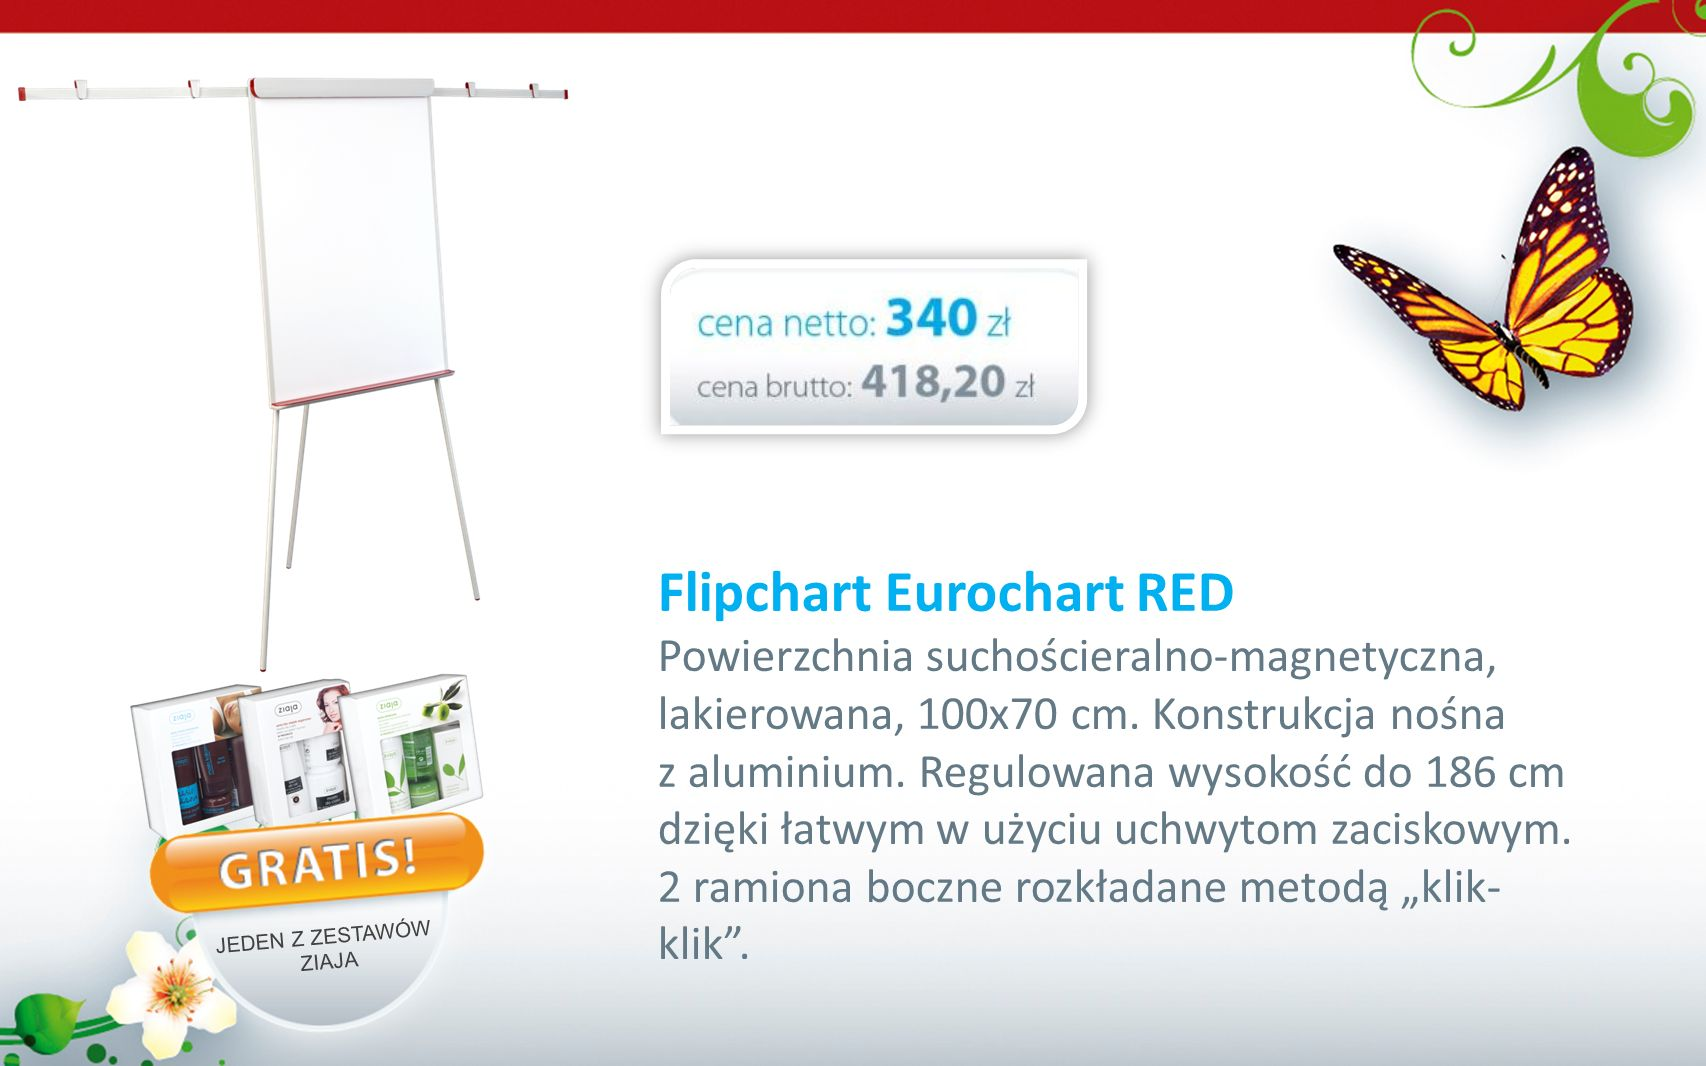 Flipchart Eurochart RED